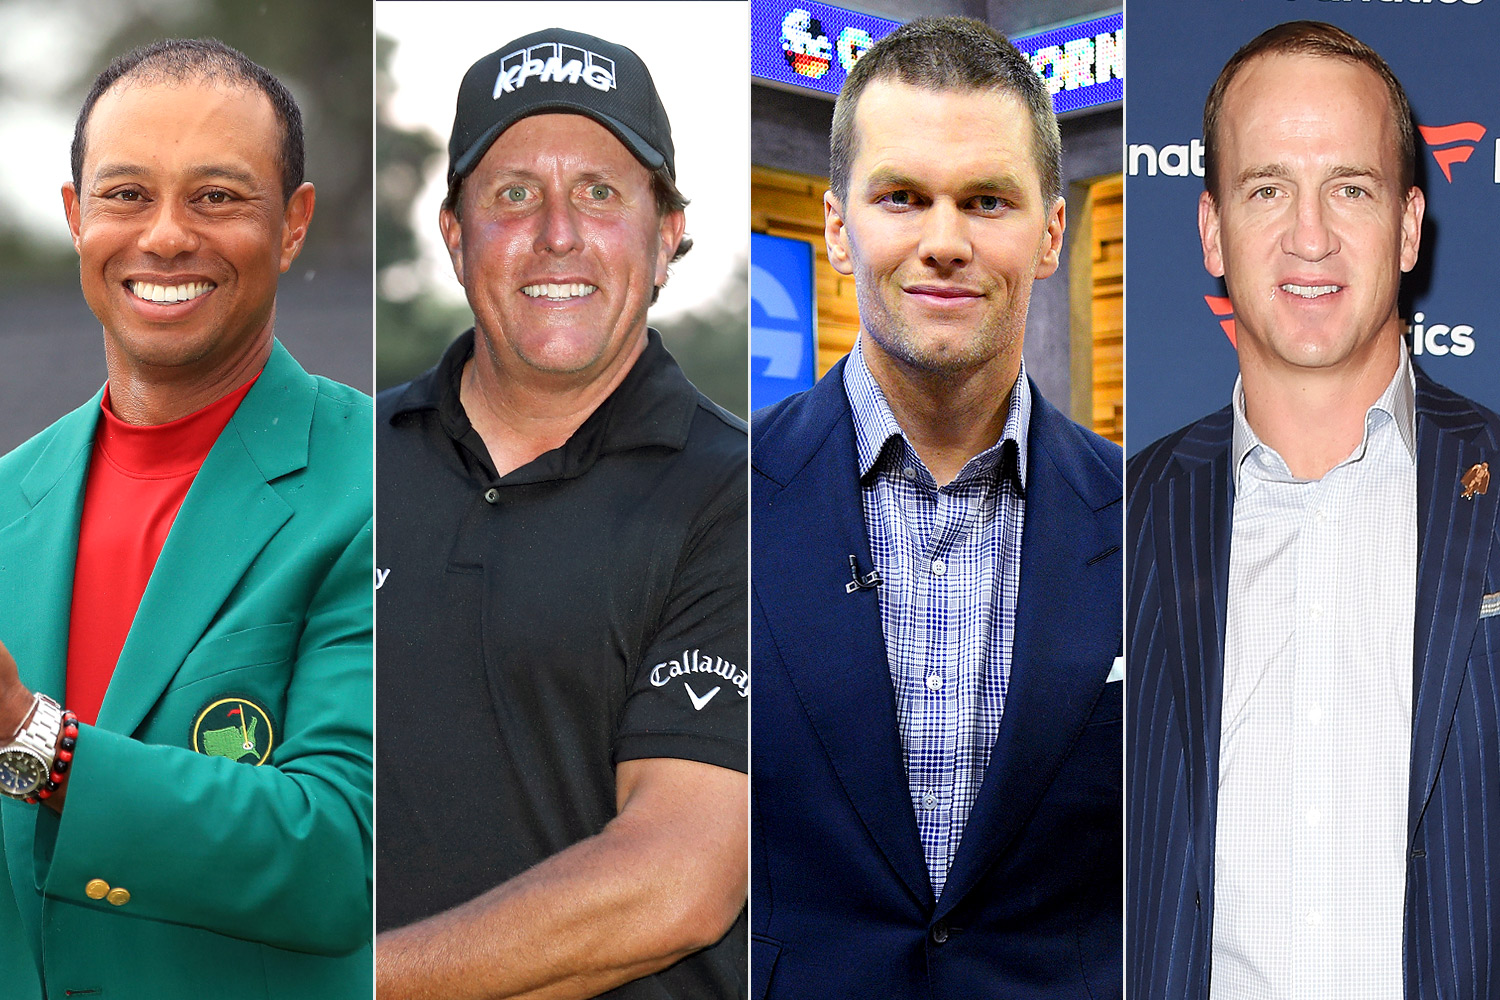 Tiger Woods, Phil Mickelson, Tom Brady and Peyton Manning